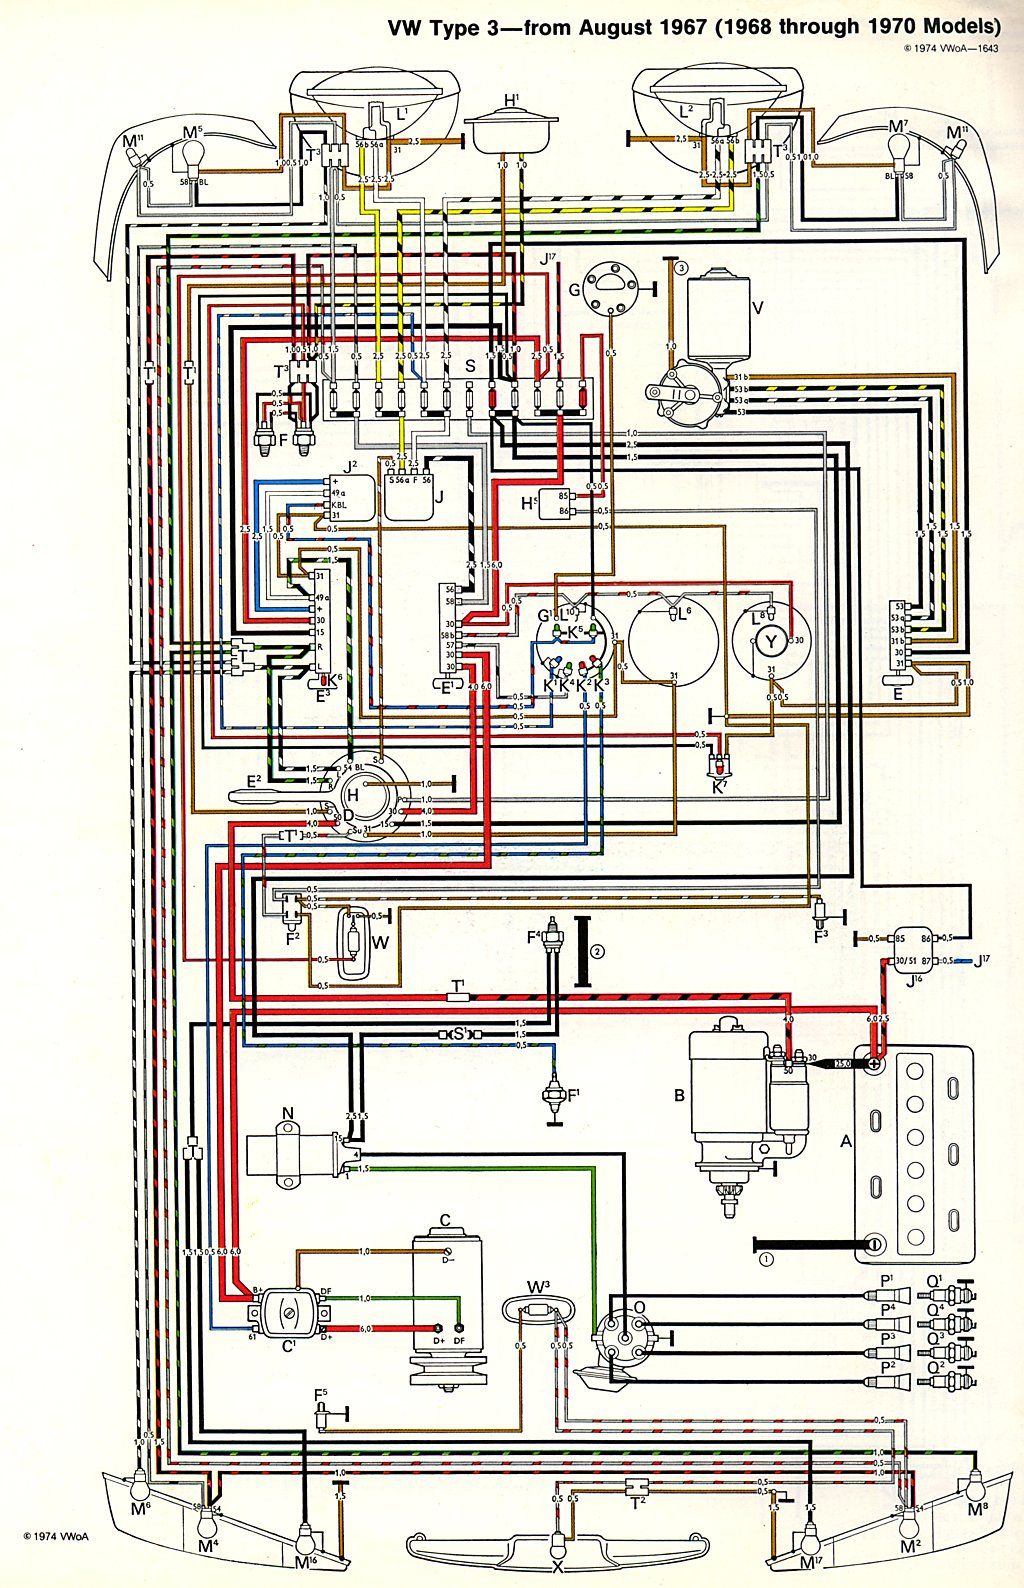 type3_6870 vw type 3 wiring diagram vw wiring diagrams free downloads \u2022 free vw type 3 wiring harness at cos-gaming.co